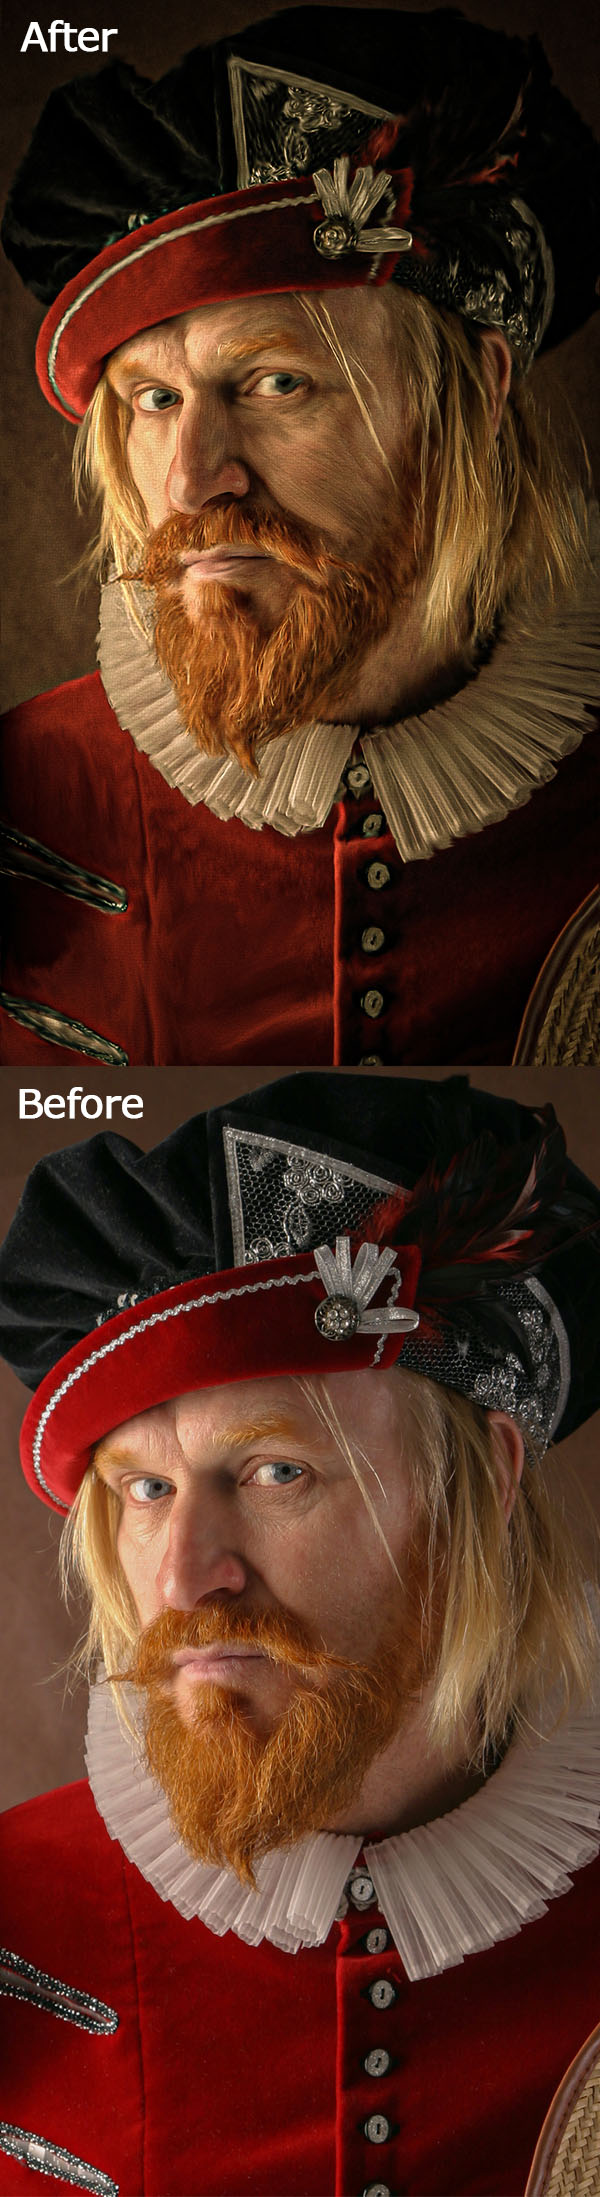 How to Make Oil Painting Effect in Photoshop Tutorial